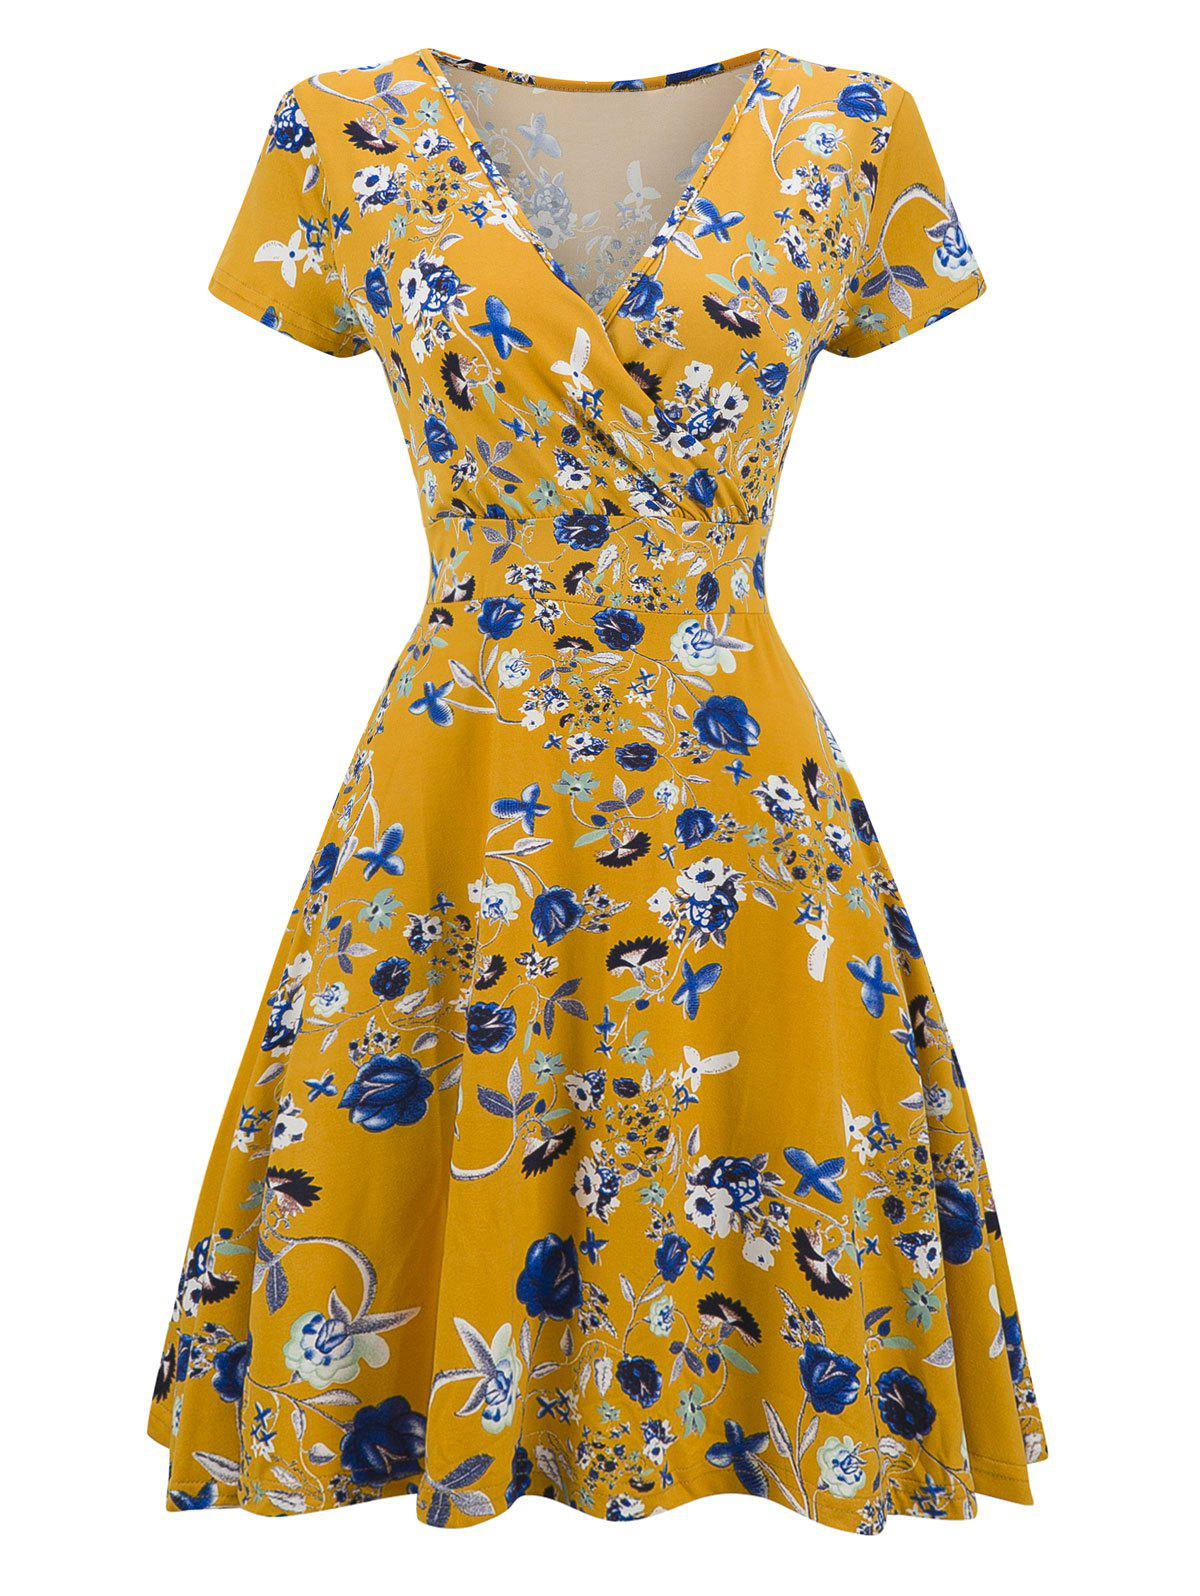 Vintage V Neck Floral Print Mini Surplice DressWOMEN<br><br>Size: XL; Color: YELLOW; Style: Brief; Material: Polyester; Silhouette: A-Line; Dress Type: Surplice Dress; Dresses Length: Mini; Neckline: V-Neck; Sleeve Length: Short Sleeves; Pattern Type: Floral; With Belt: No; Season: Fall,Spring; Weight: 0.3200kg; Package Contents: 1 x Dress;